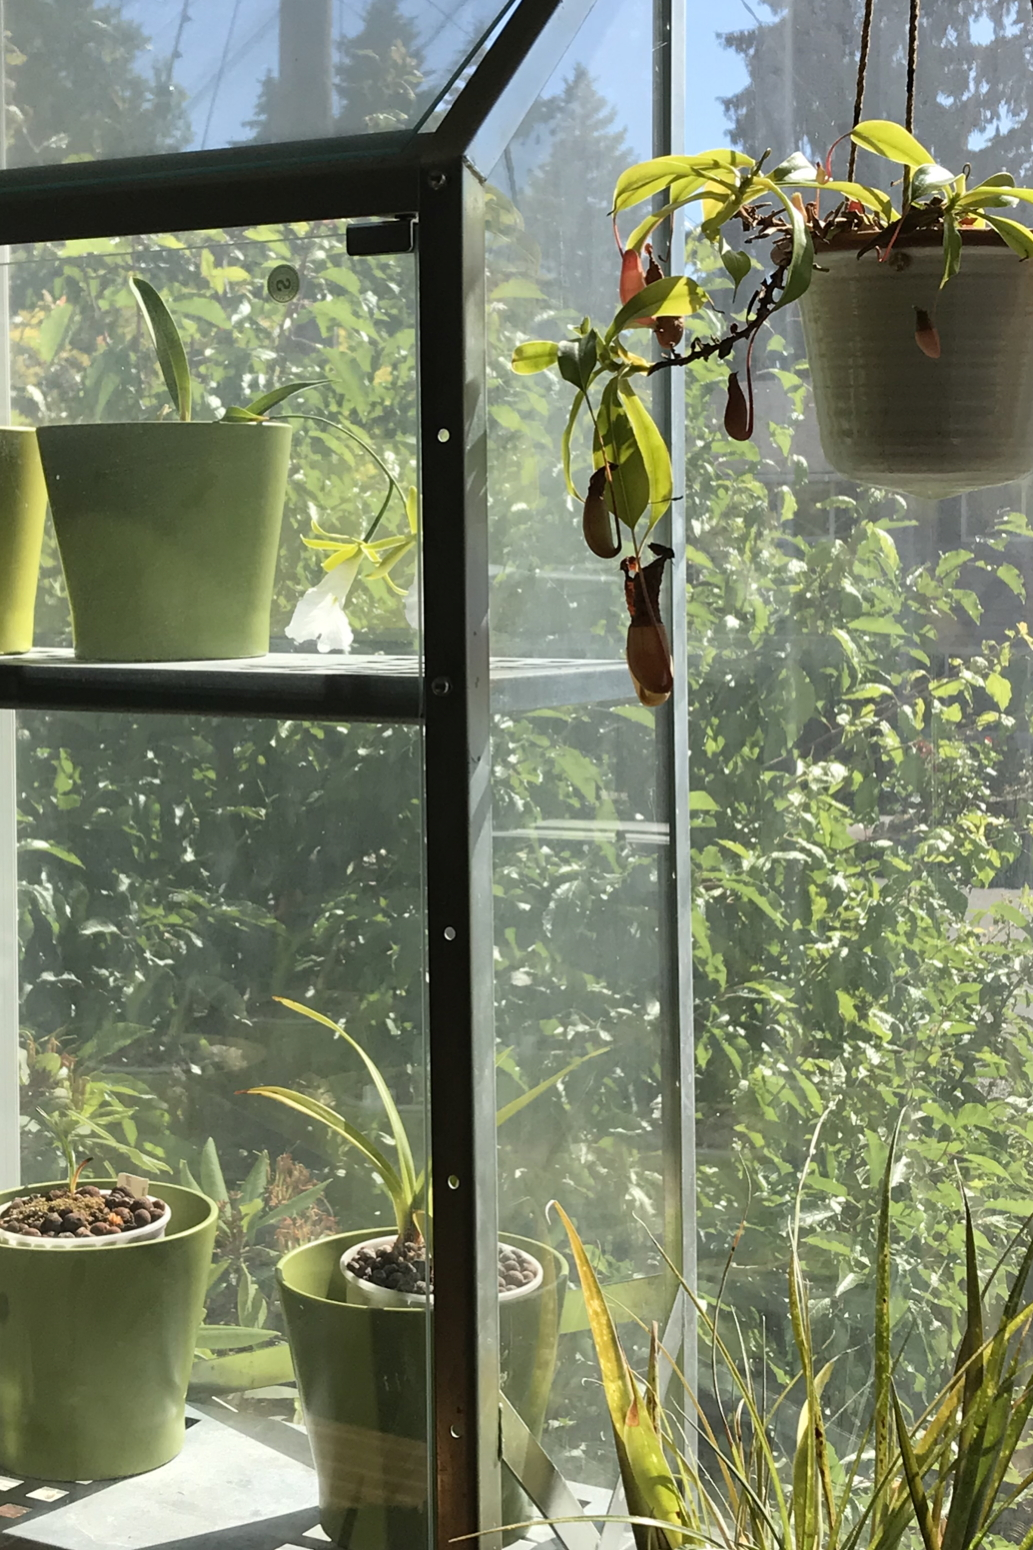 A nepenthes pitcher plant hangs over a bromeliad, next to an indoor greenhouse with orchids, including a blooming Encyclia mariae (formerly Euchile mariae).